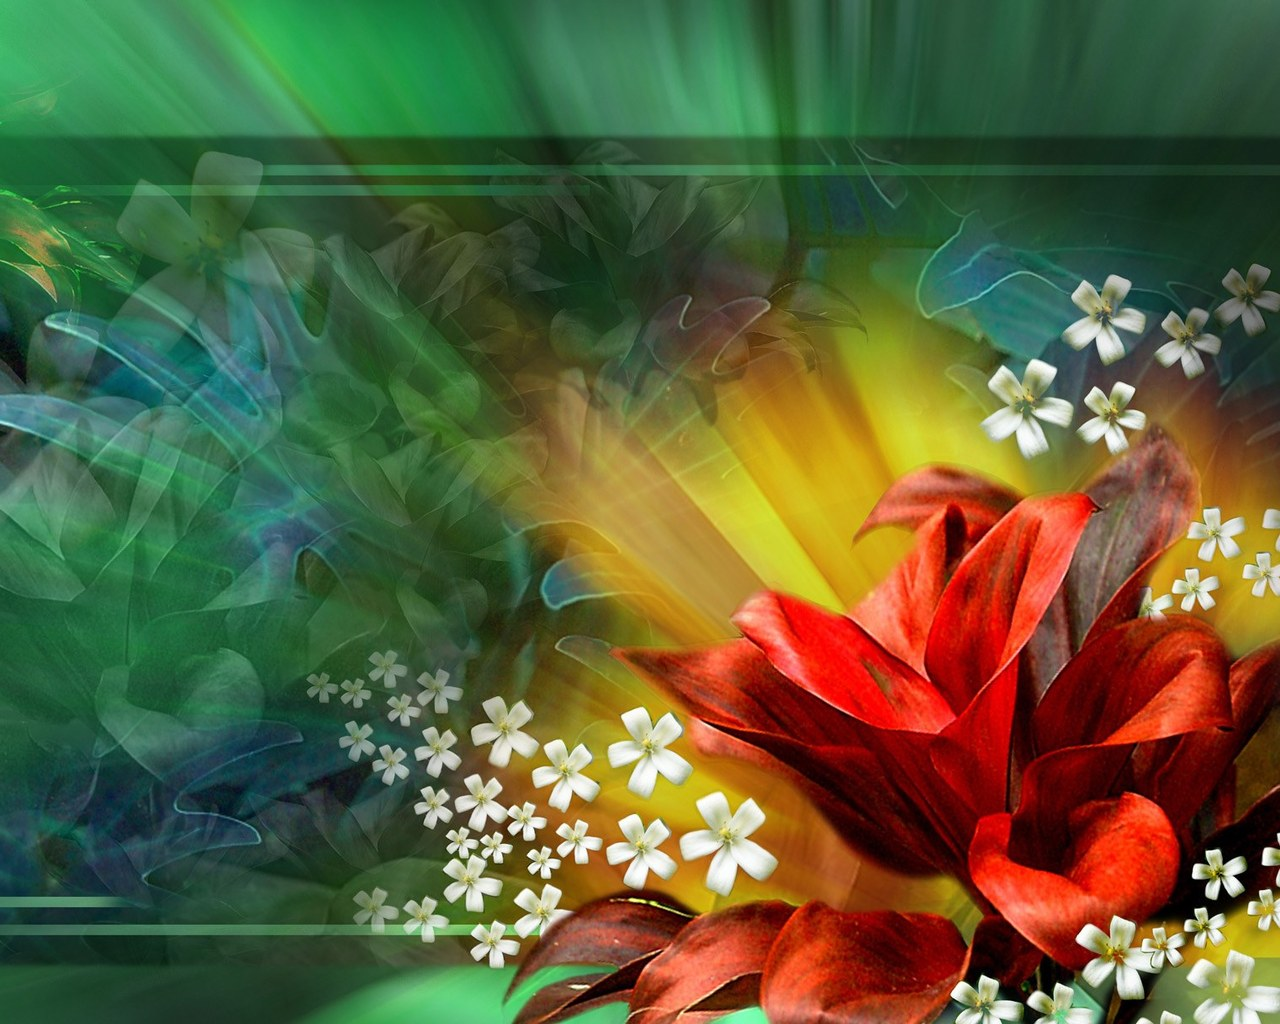 WWW Wallpapers Free Download Com